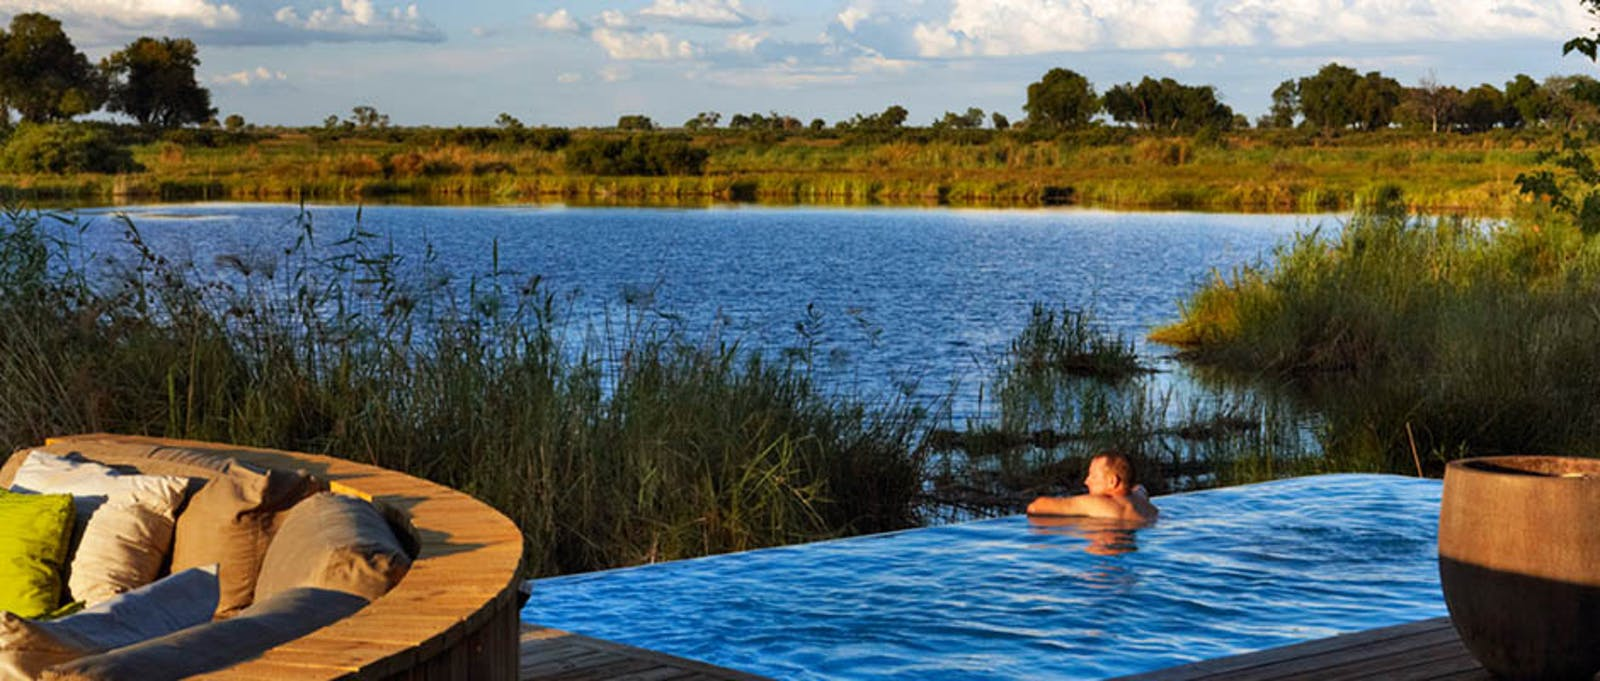 Outside swimming pool at Kings Pool Camp, Botswana